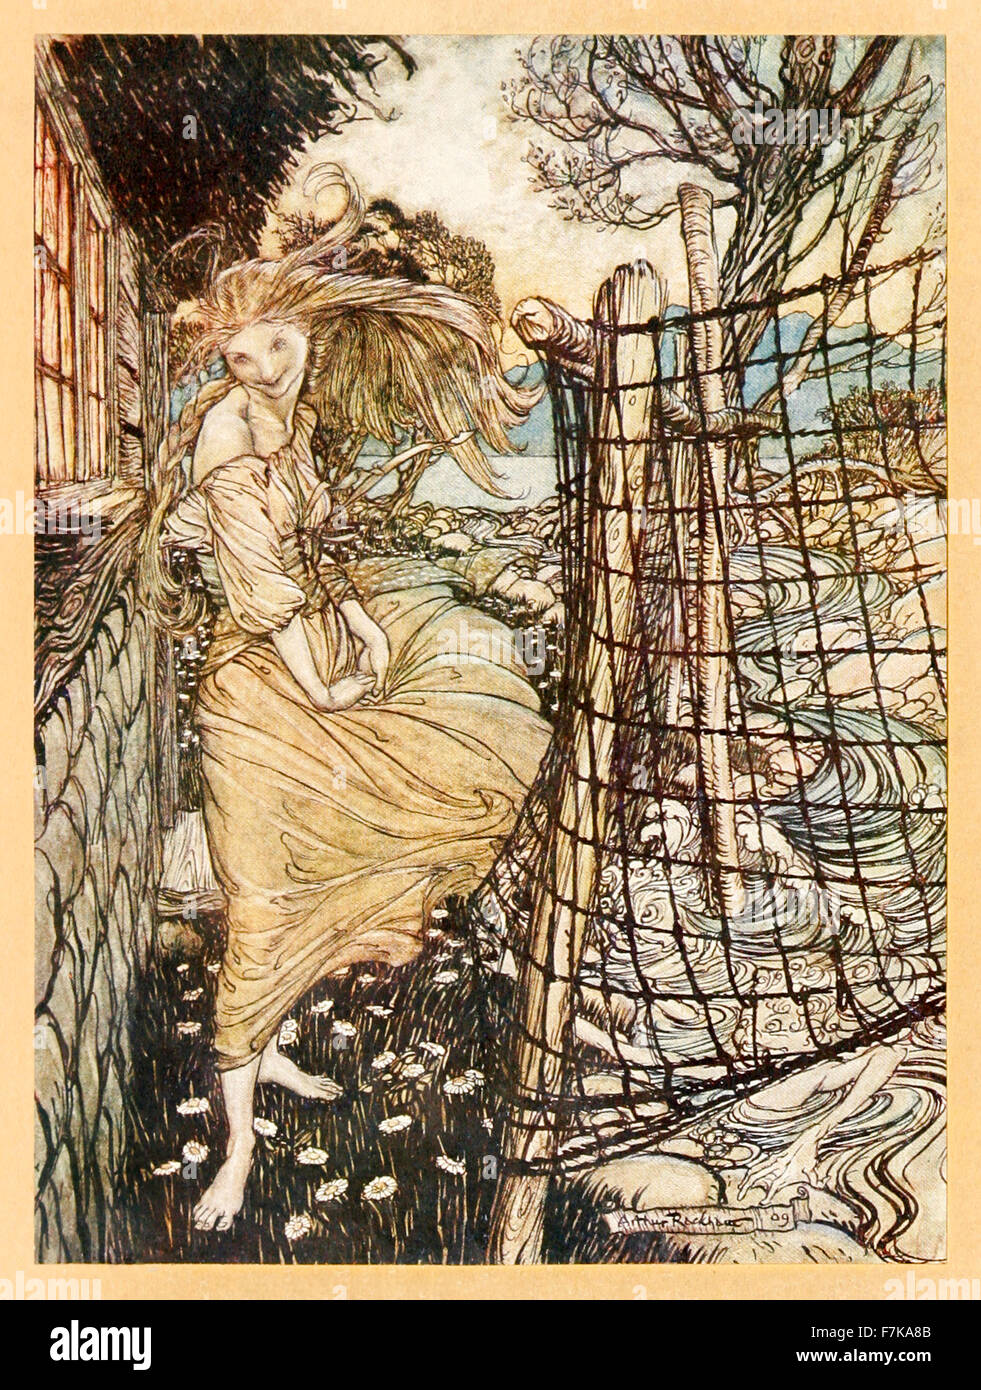 Frontispiece showing 'Undine outside the window' from 'Undine' illustrated by Arthur Rackham (1867-1939). - Stock Image